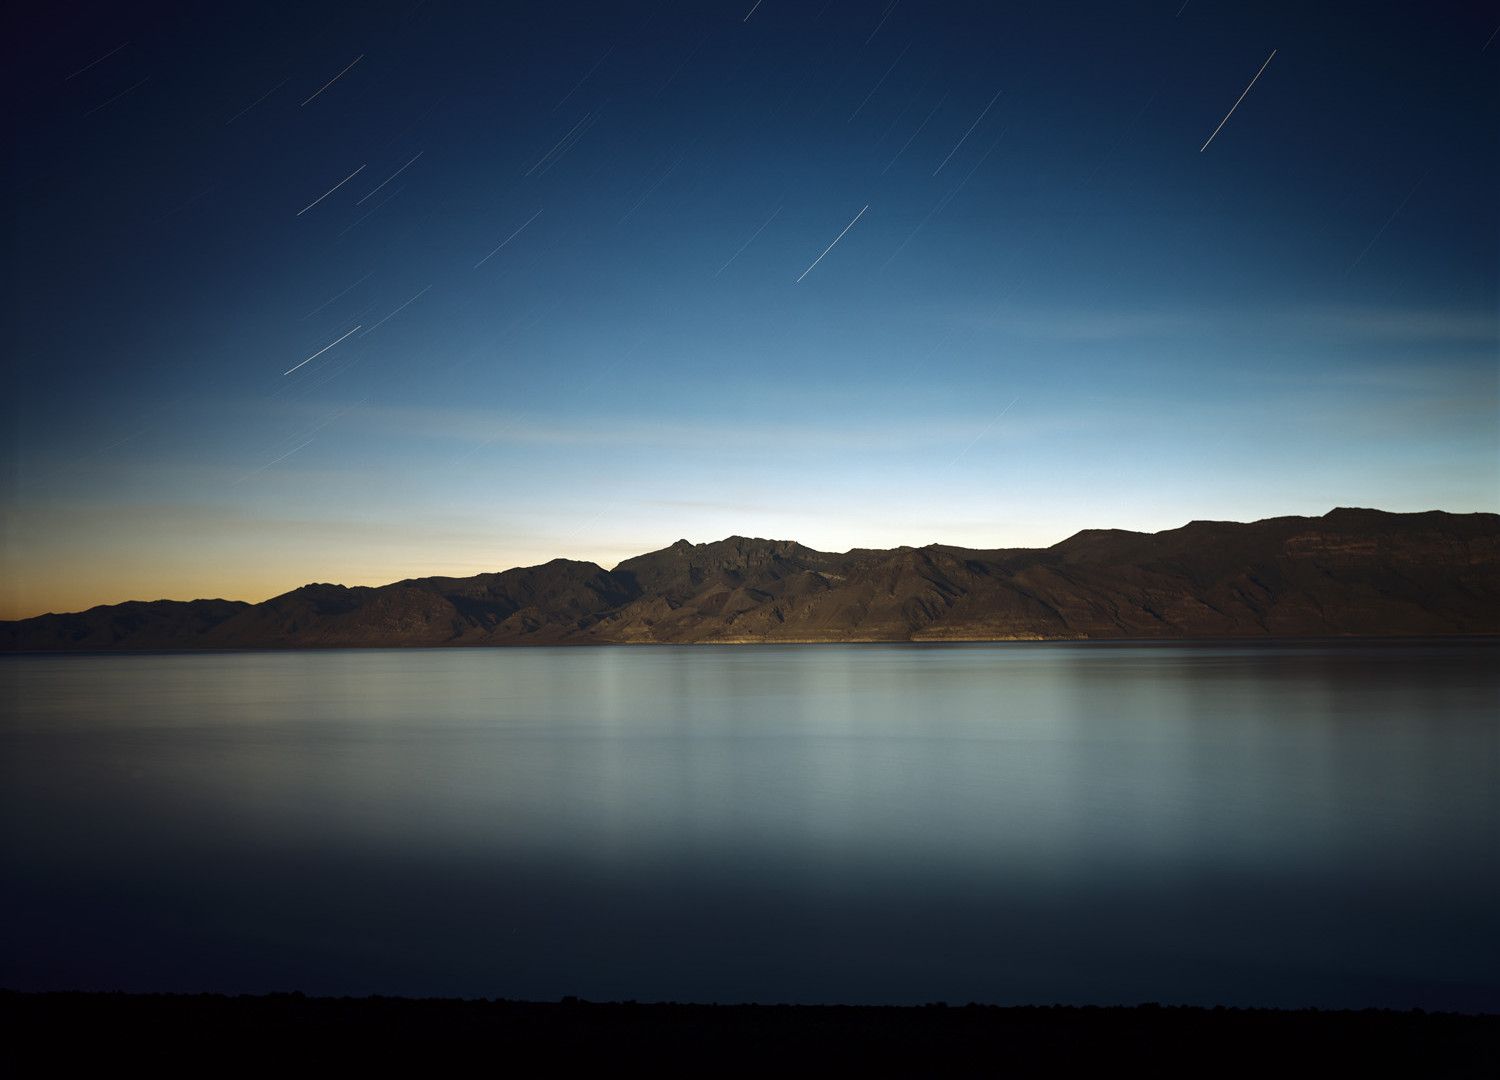 Richard Misrach, Pyramid Lake (At Night), 2004